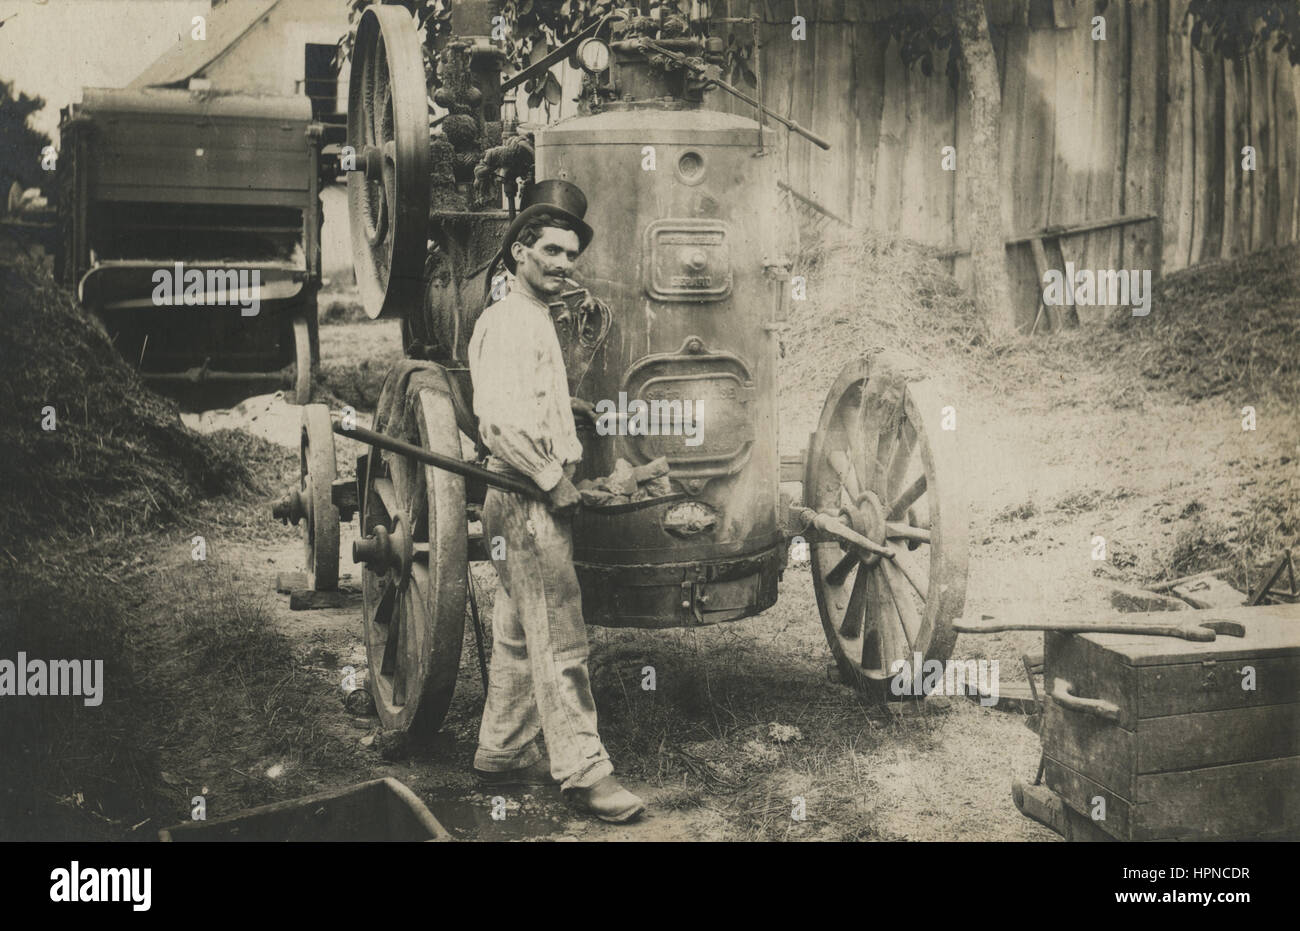 Early 1900s antique Steampunk photo of an engineer, worker with a top hat loading coal in a portable steam engine - Stock Image